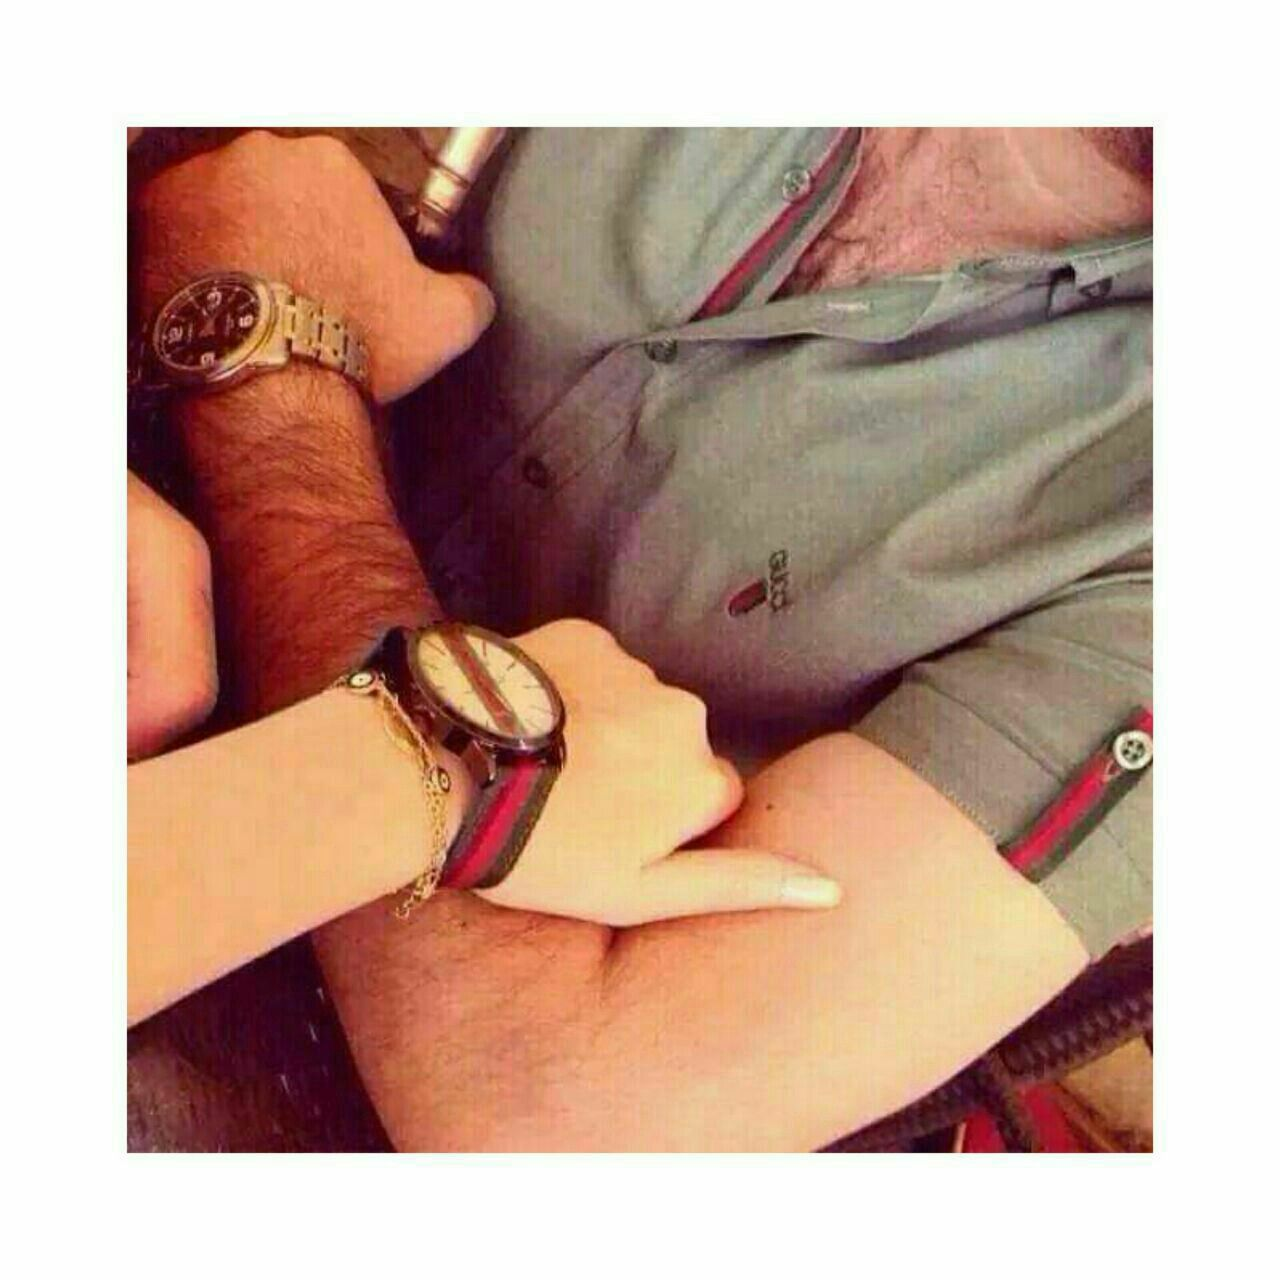 Pin By Zozo On صور كبلات Couple Hands Photo Lovely